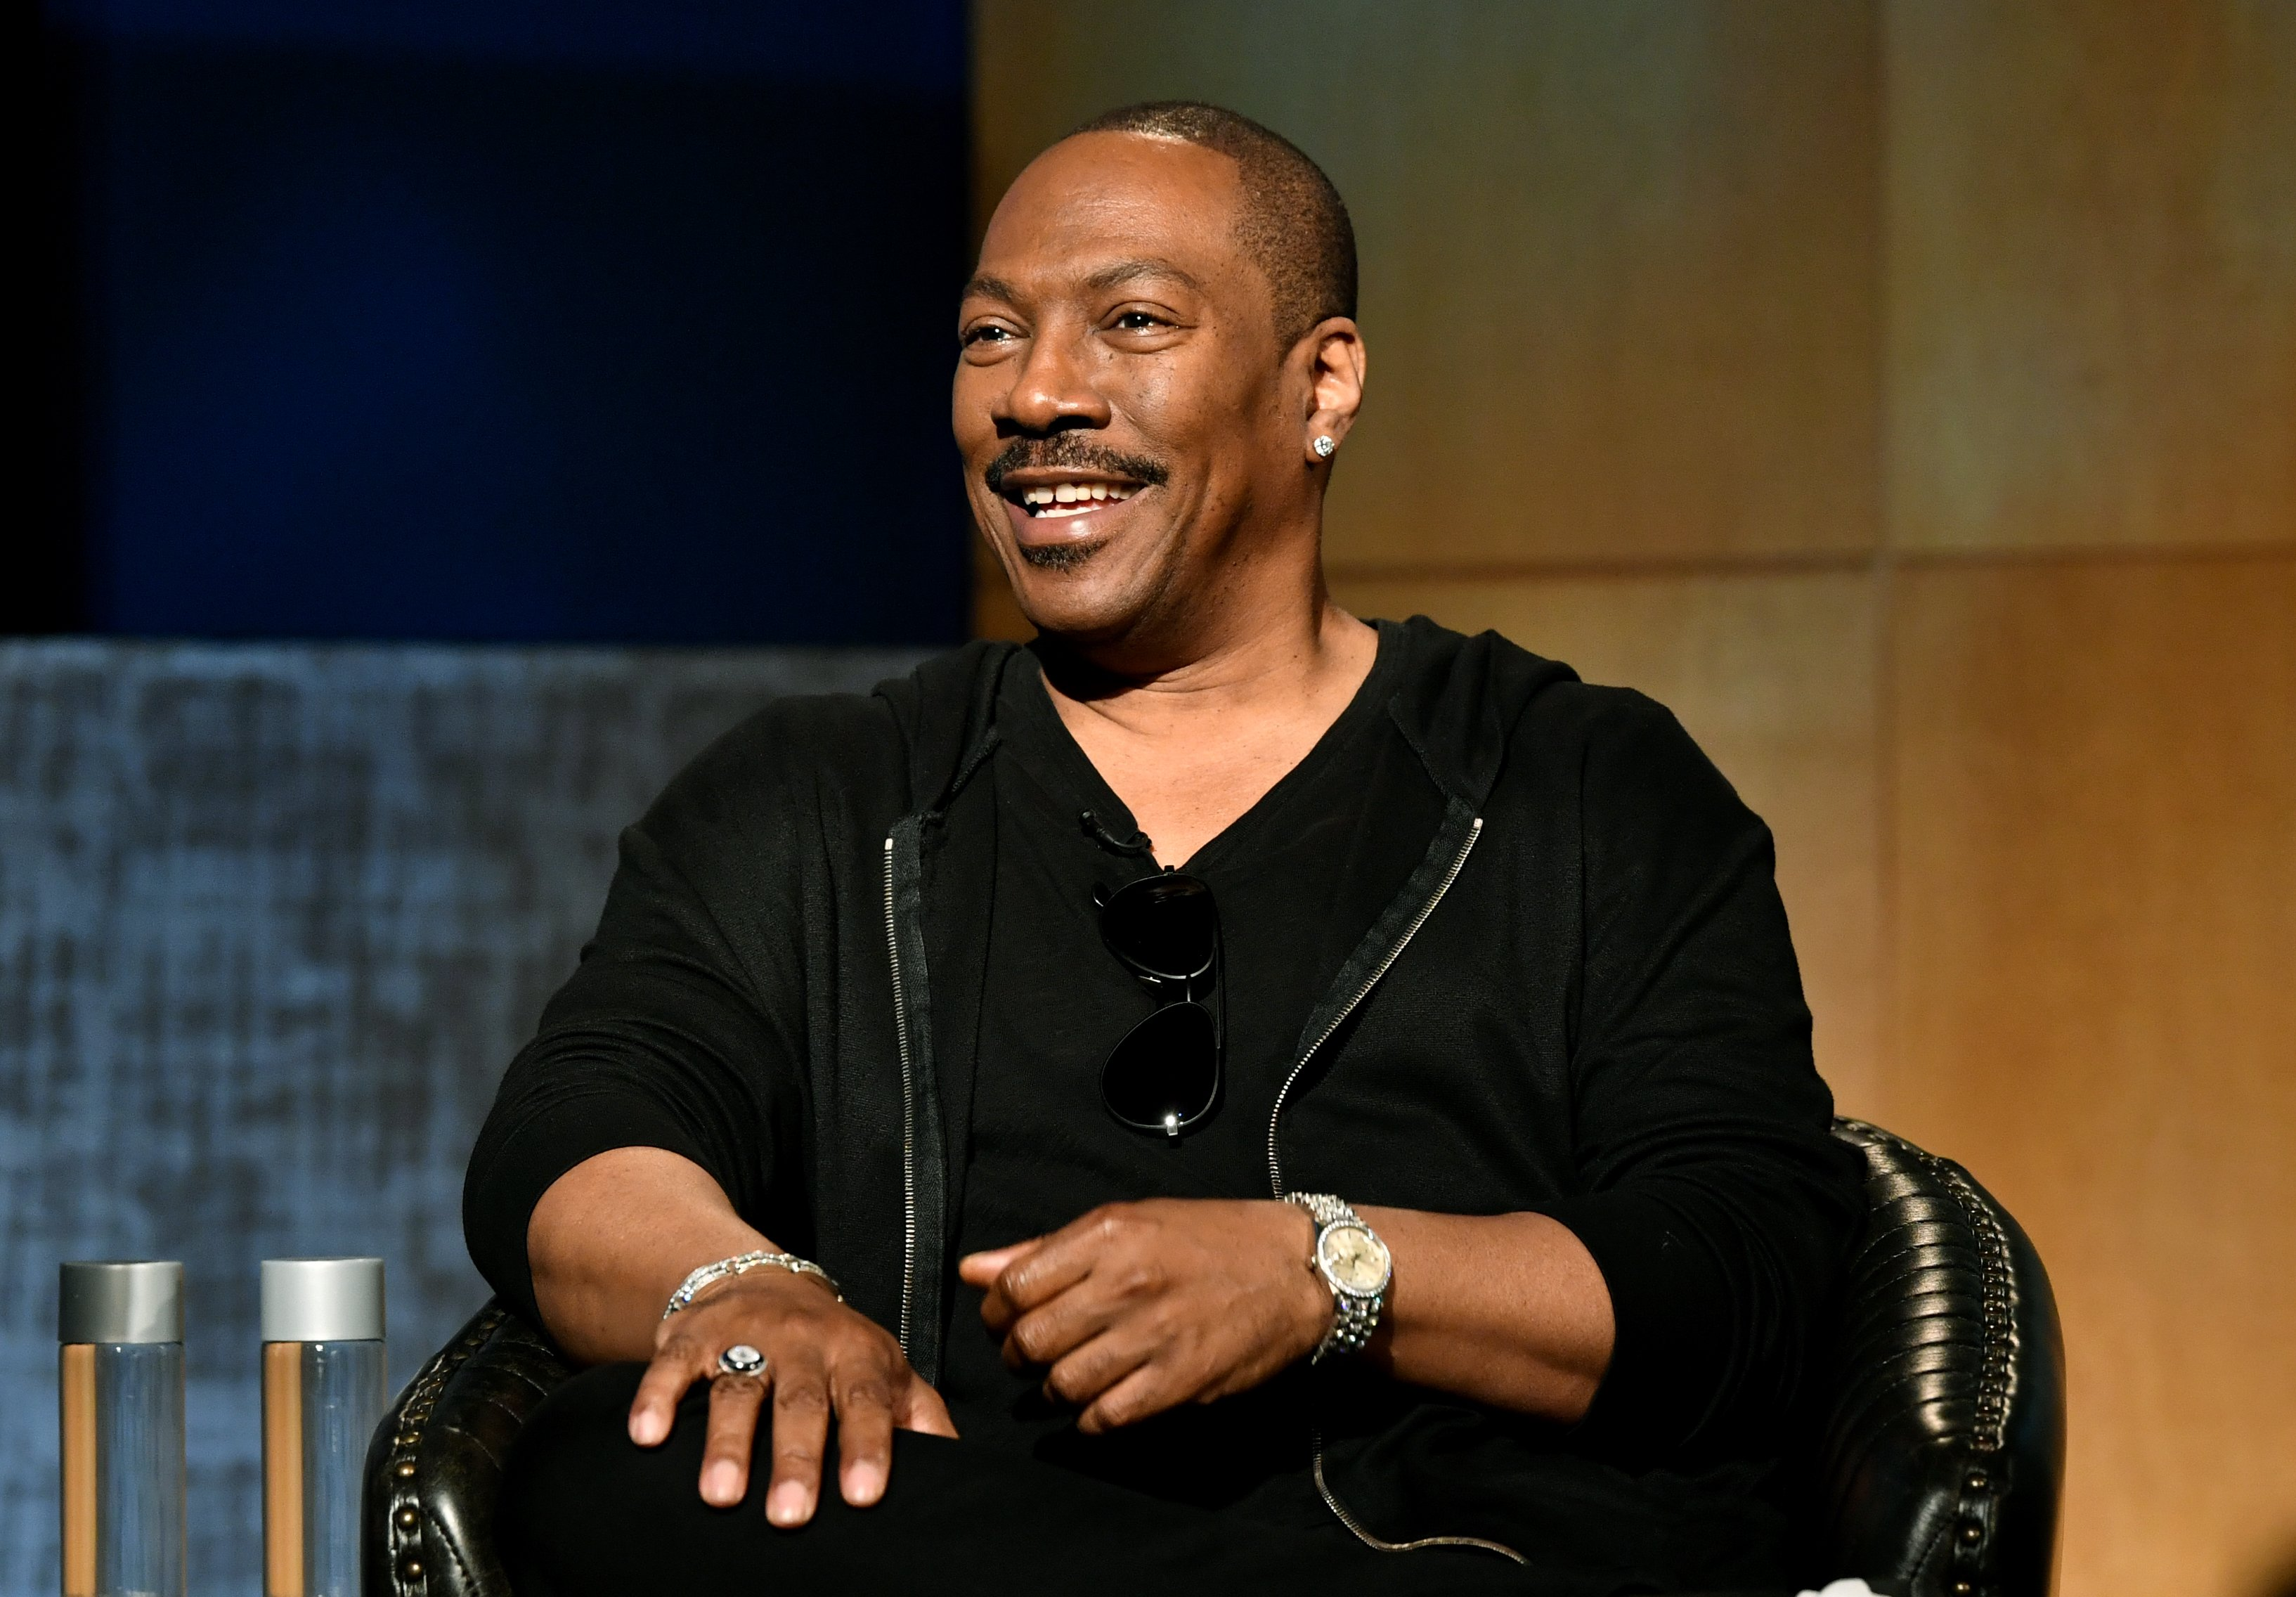 Eddie Murphy speaks onstage during the LA Tastemaker event for Comedians in Cars at The Paley Center for Media on July 17, 2019 | Photo: Getty Images